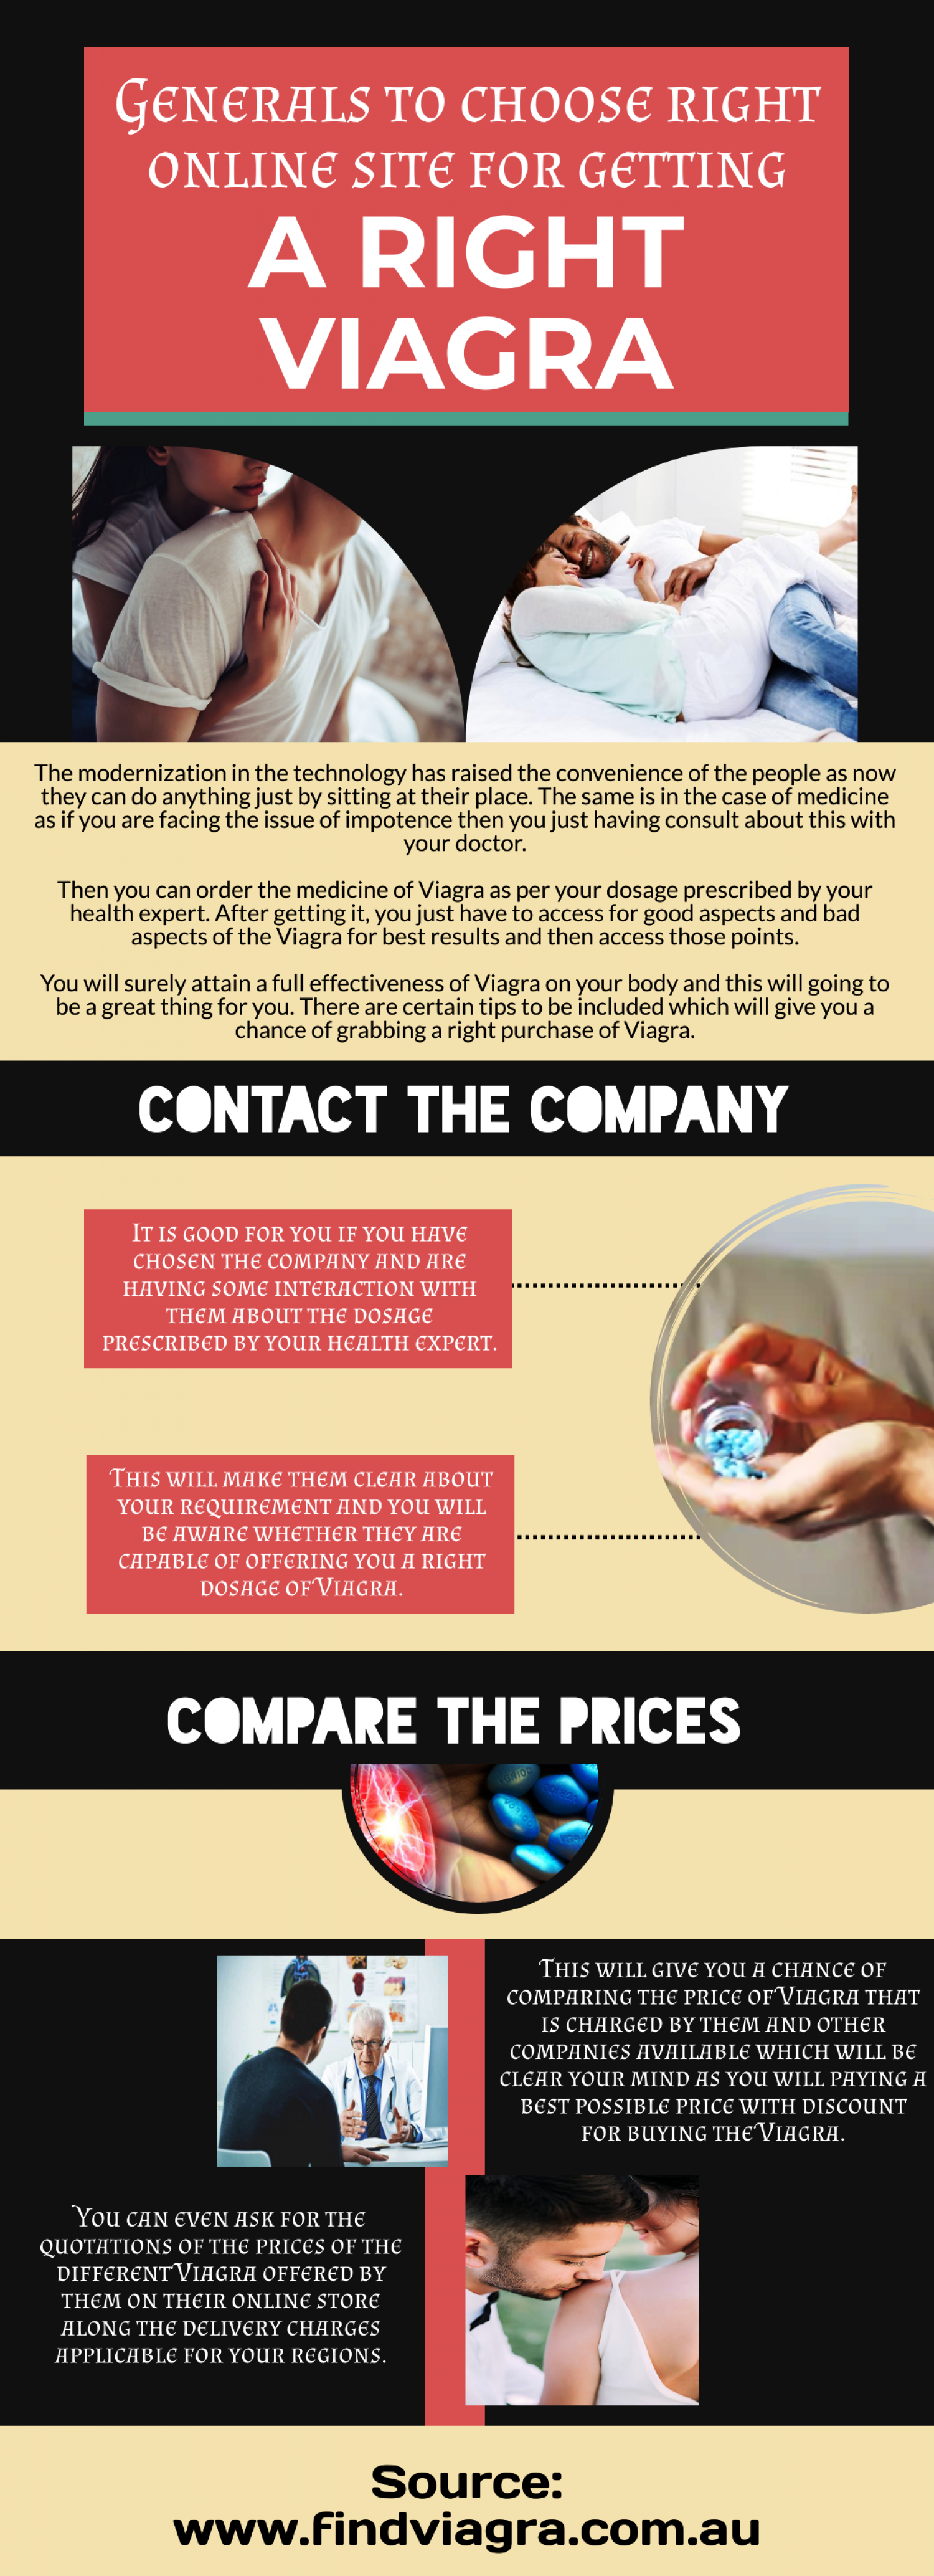 Attain a full effectiveness of Viagra on your body  Infographic